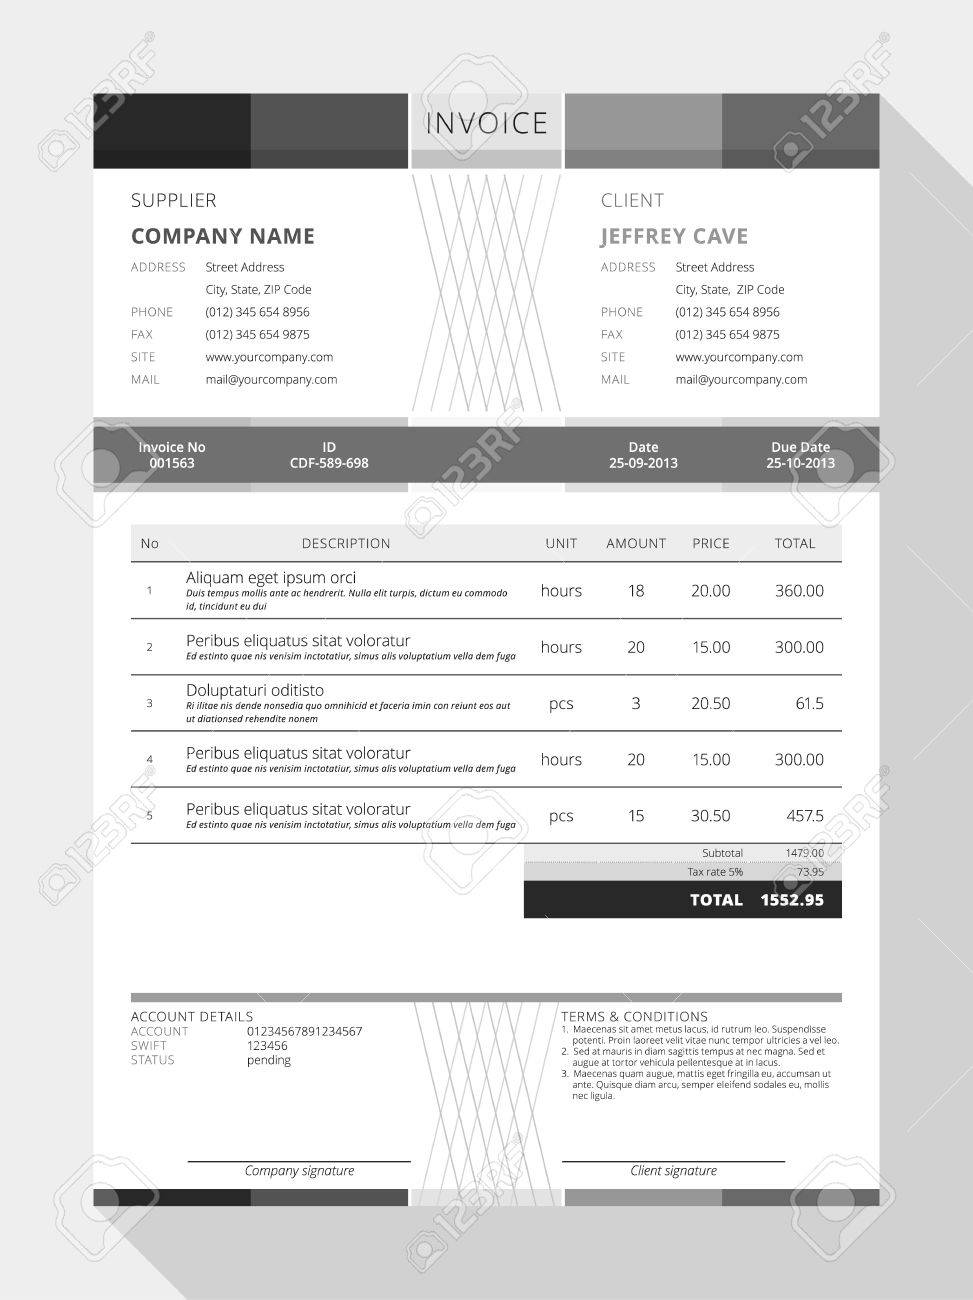 Howcanigettallerus  Unique Design An Invoice  Professional Graphic Design Invoice  With Outstanding Vector Customizable Invoice Form Template Design Vector   Design An Invoice With Enchanting Star Tsp Eco Receipt Printer Also Rent Receipt Templates In Addition Snbc Receipt Printer And Return Receipt Requested Cost As Well As Fake Receipts Free Additionally Donation Receipts Templates From Happytomco With Howcanigettallerus  Outstanding Design An Invoice  Professional Graphic Design Invoice  With Enchanting Vector Customizable Invoice Form Template Design Vector   Design An Invoice And Unique Star Tsp Eco Receipt Printer Also Rent Receipt Templates In Addition Snbc Receipt Printer From Happytomco